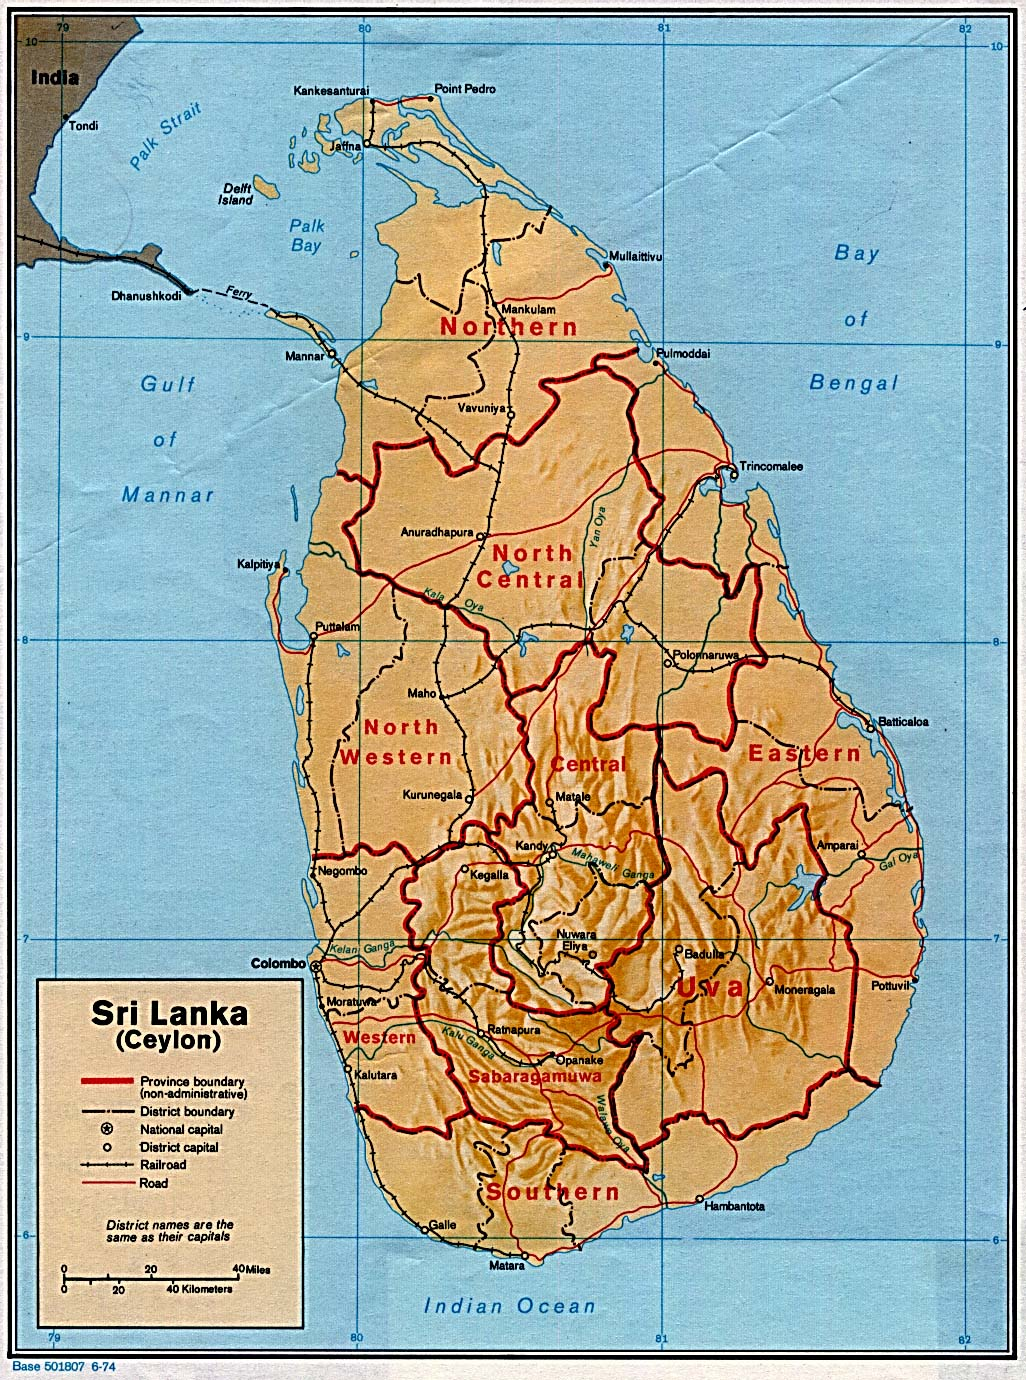 Sri Lanka Maps - Perry-Castañeda Map Collection - UT Library Online